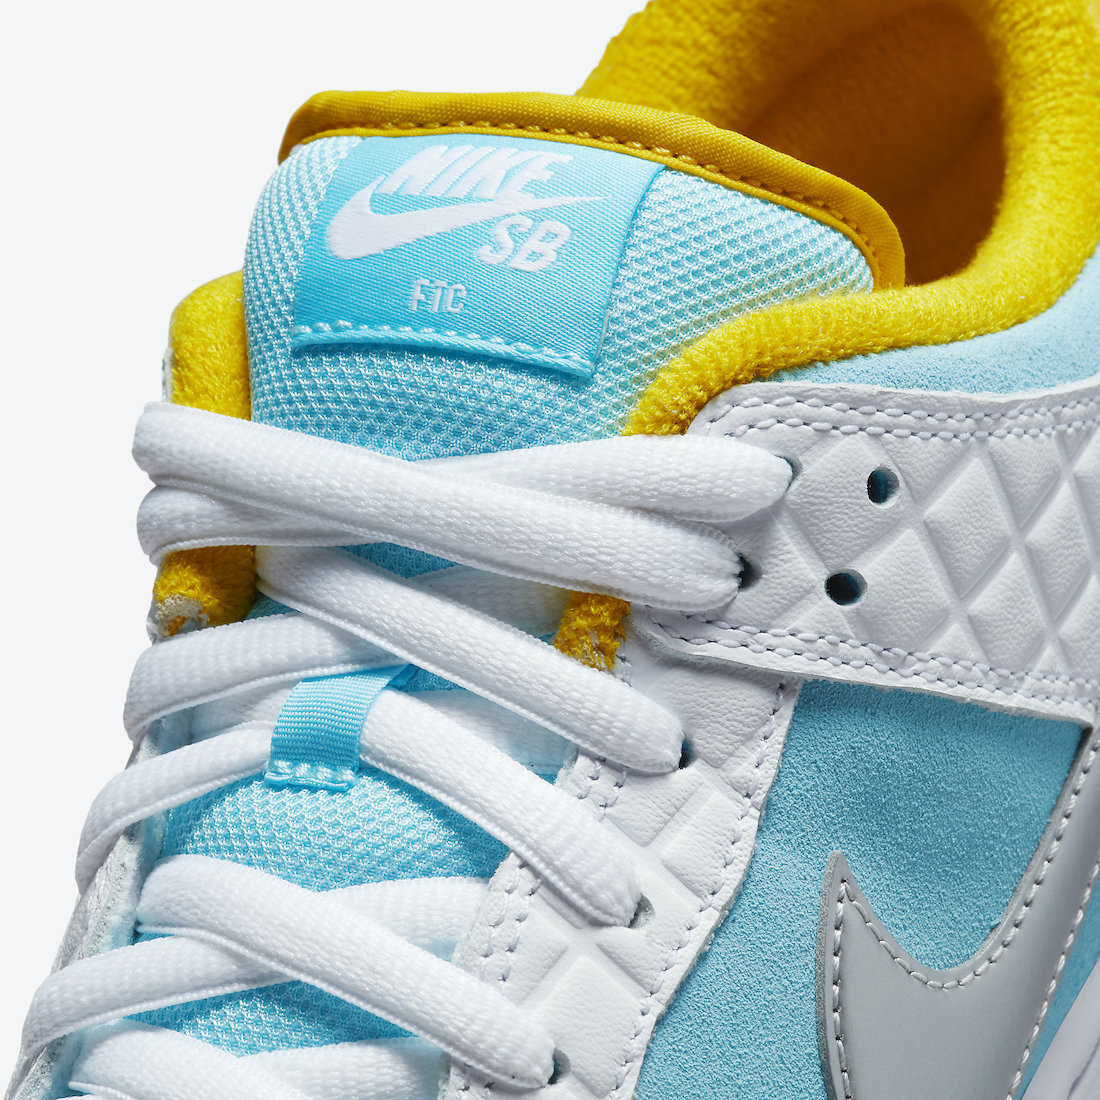 ftc nike sb dunk low bathhouse DH7687 400 release date 6